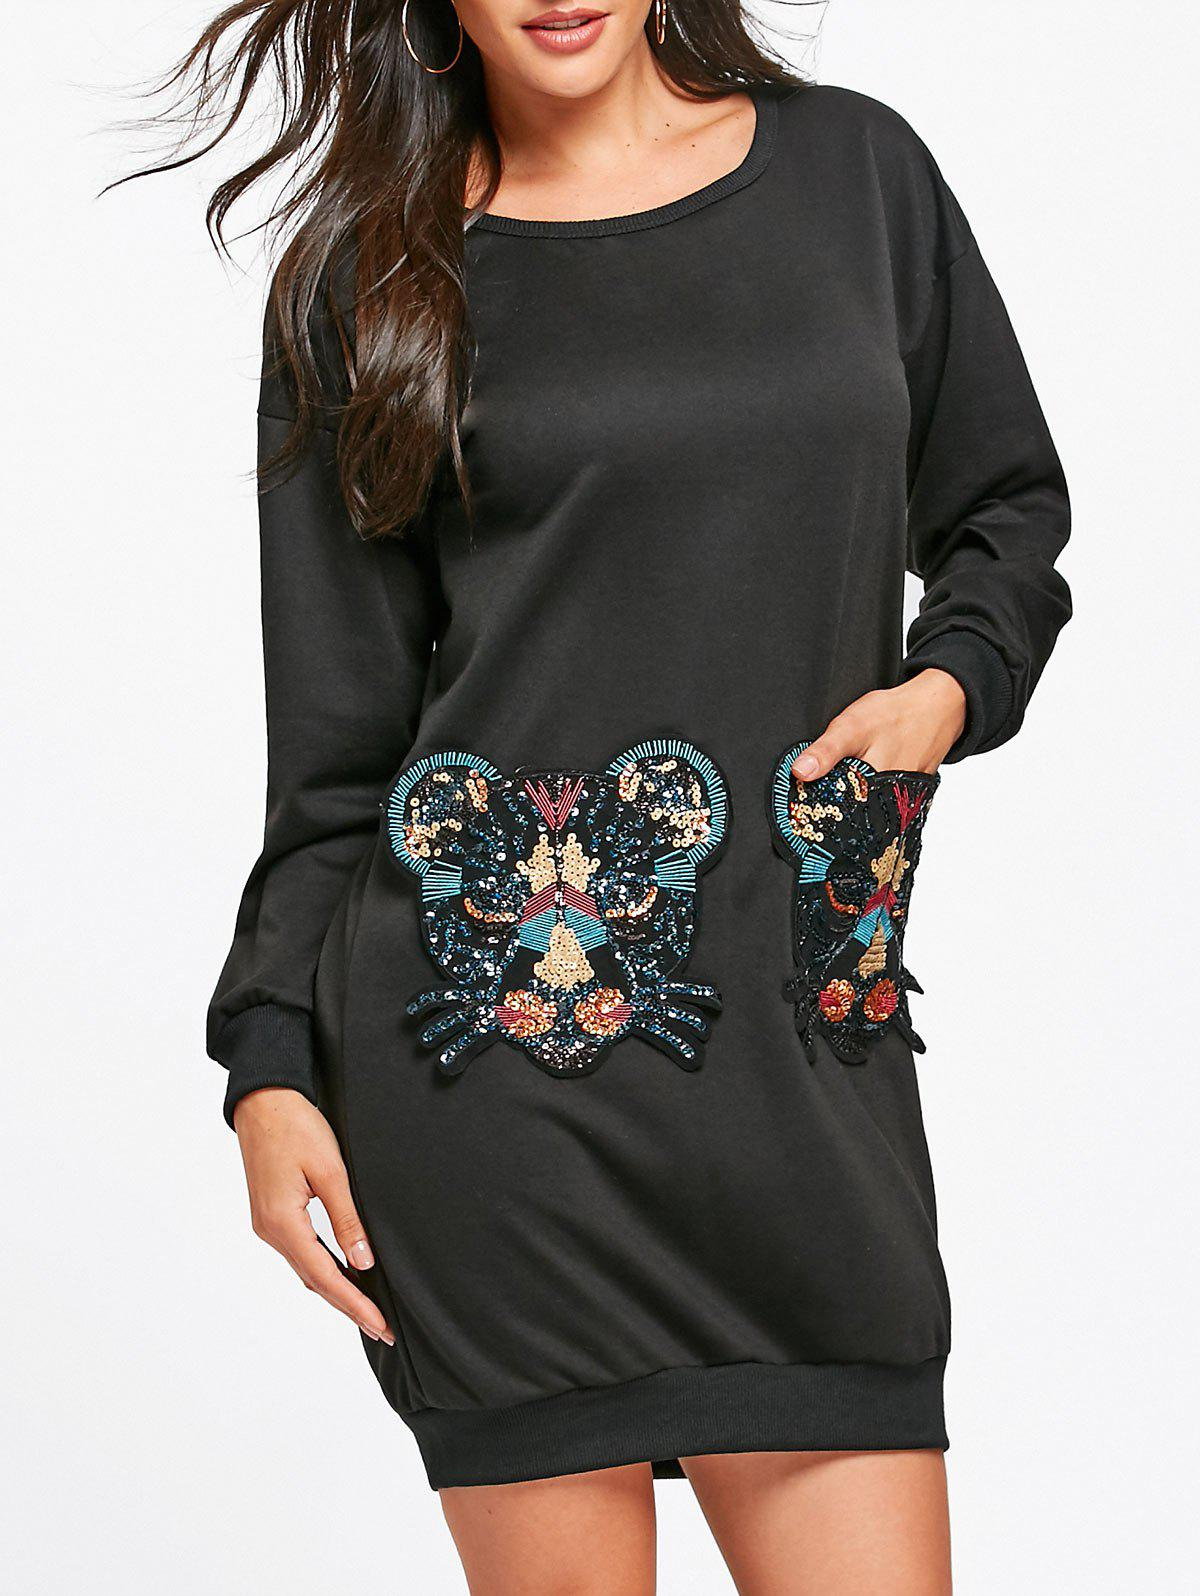 Drop Shoulder Sequined Tiger Sweatshirt Dress - BLACK S